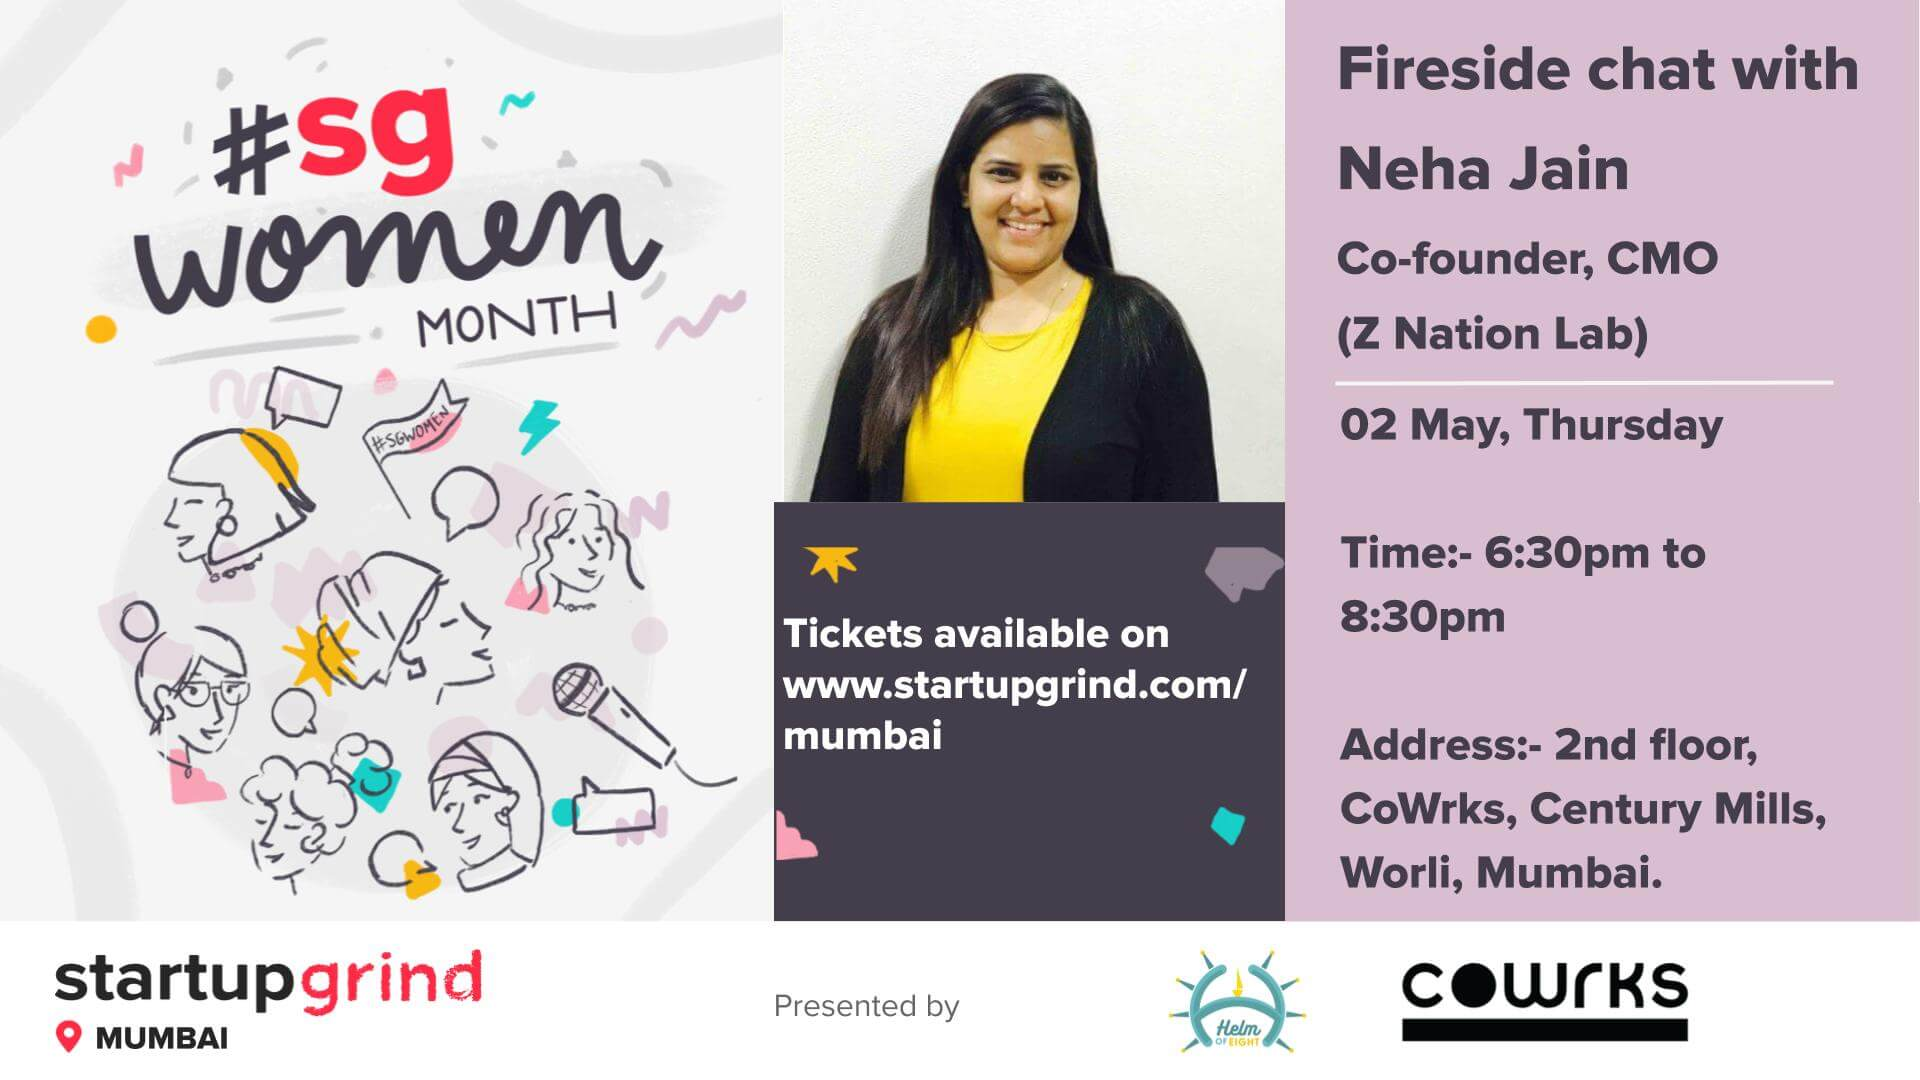 Startup Grind Fireside chat with Neha Jain (Z Nation Lab) img